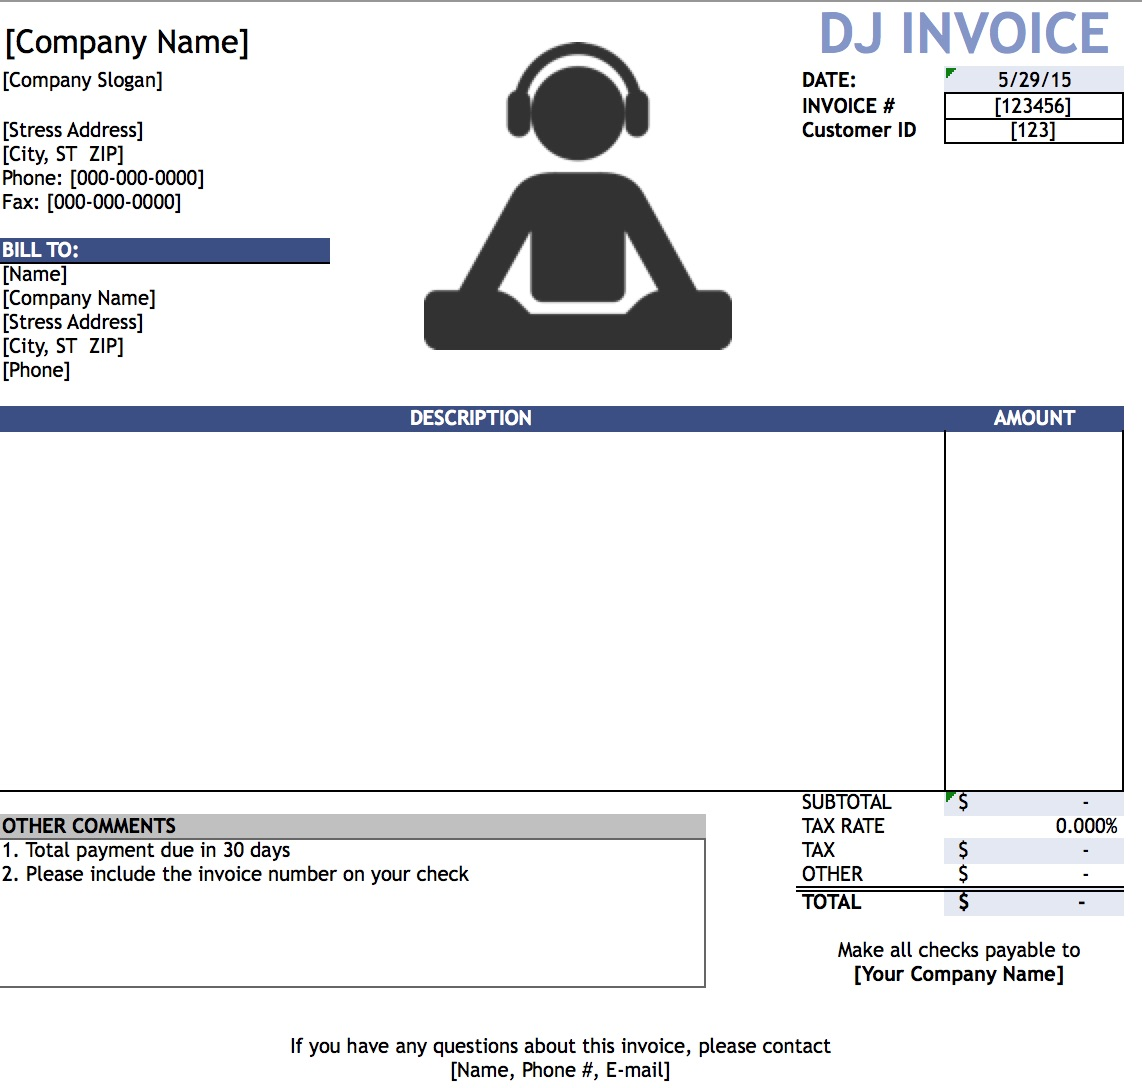 Free DJ Disc Jockey Invoice Template Excel PDF Word Doc - Invoice format in word doc for service business